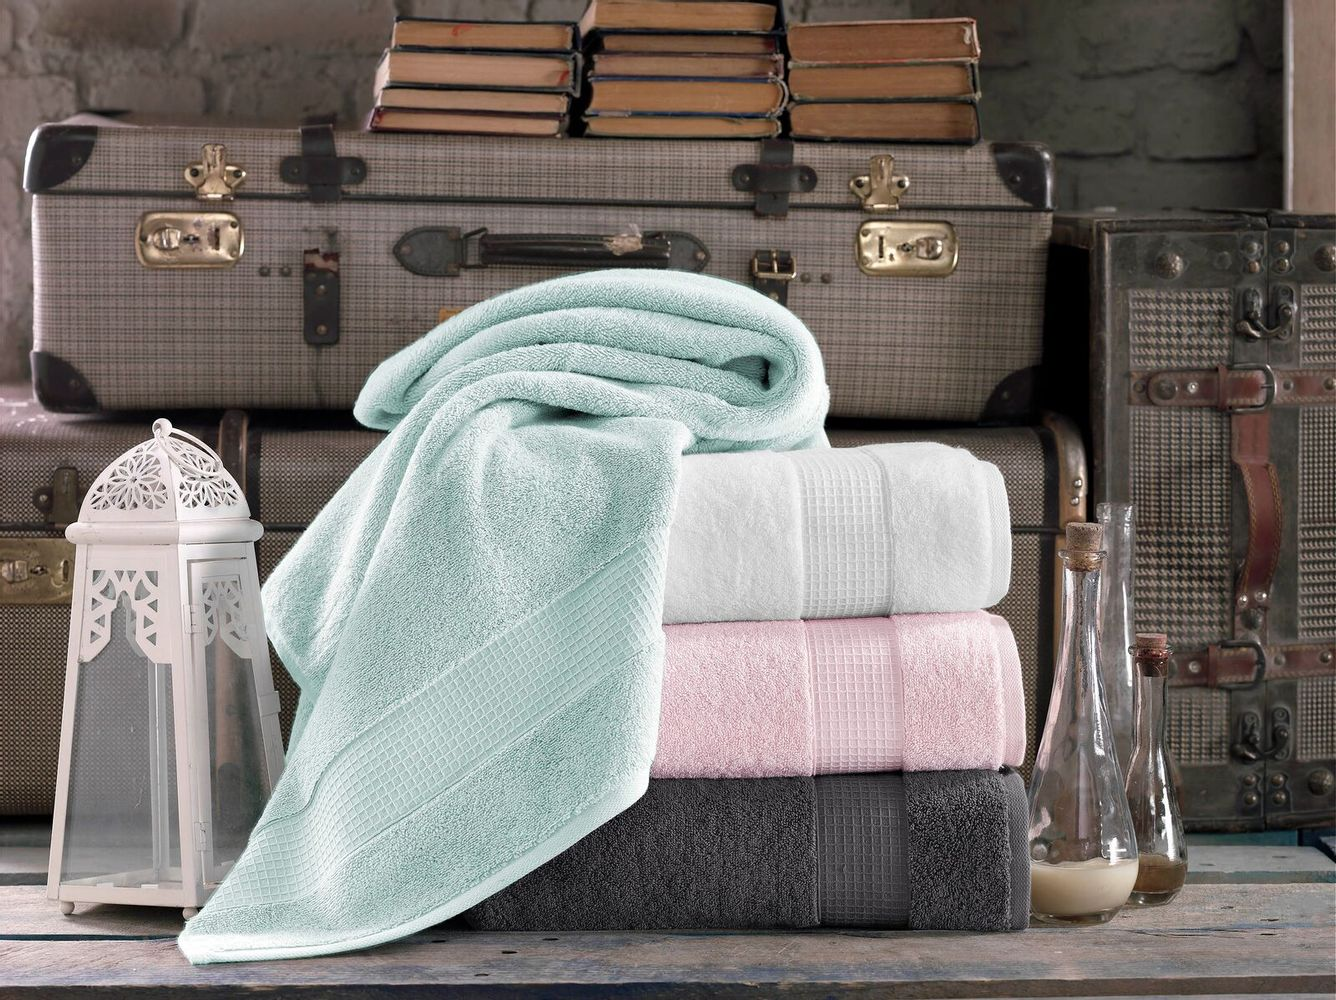 Milano Collection 2 Bath Towels Set